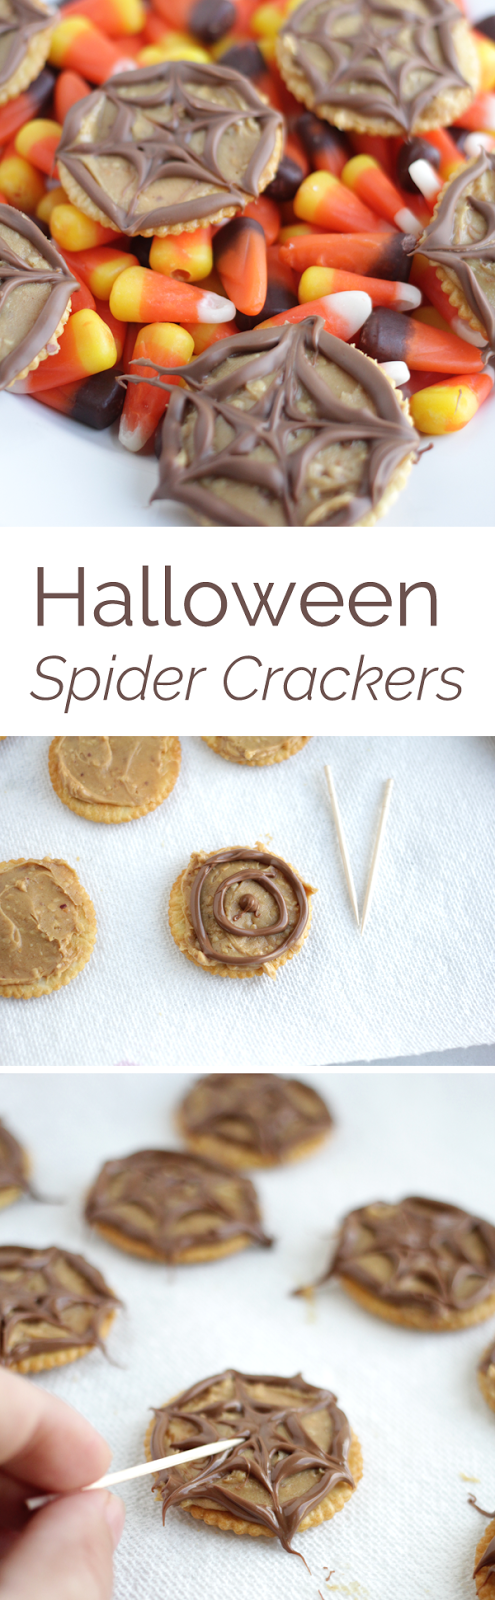 This simple step by step tutorial shows you how to make an easy Halloween snack of chocolate peanut butter spider crackers.